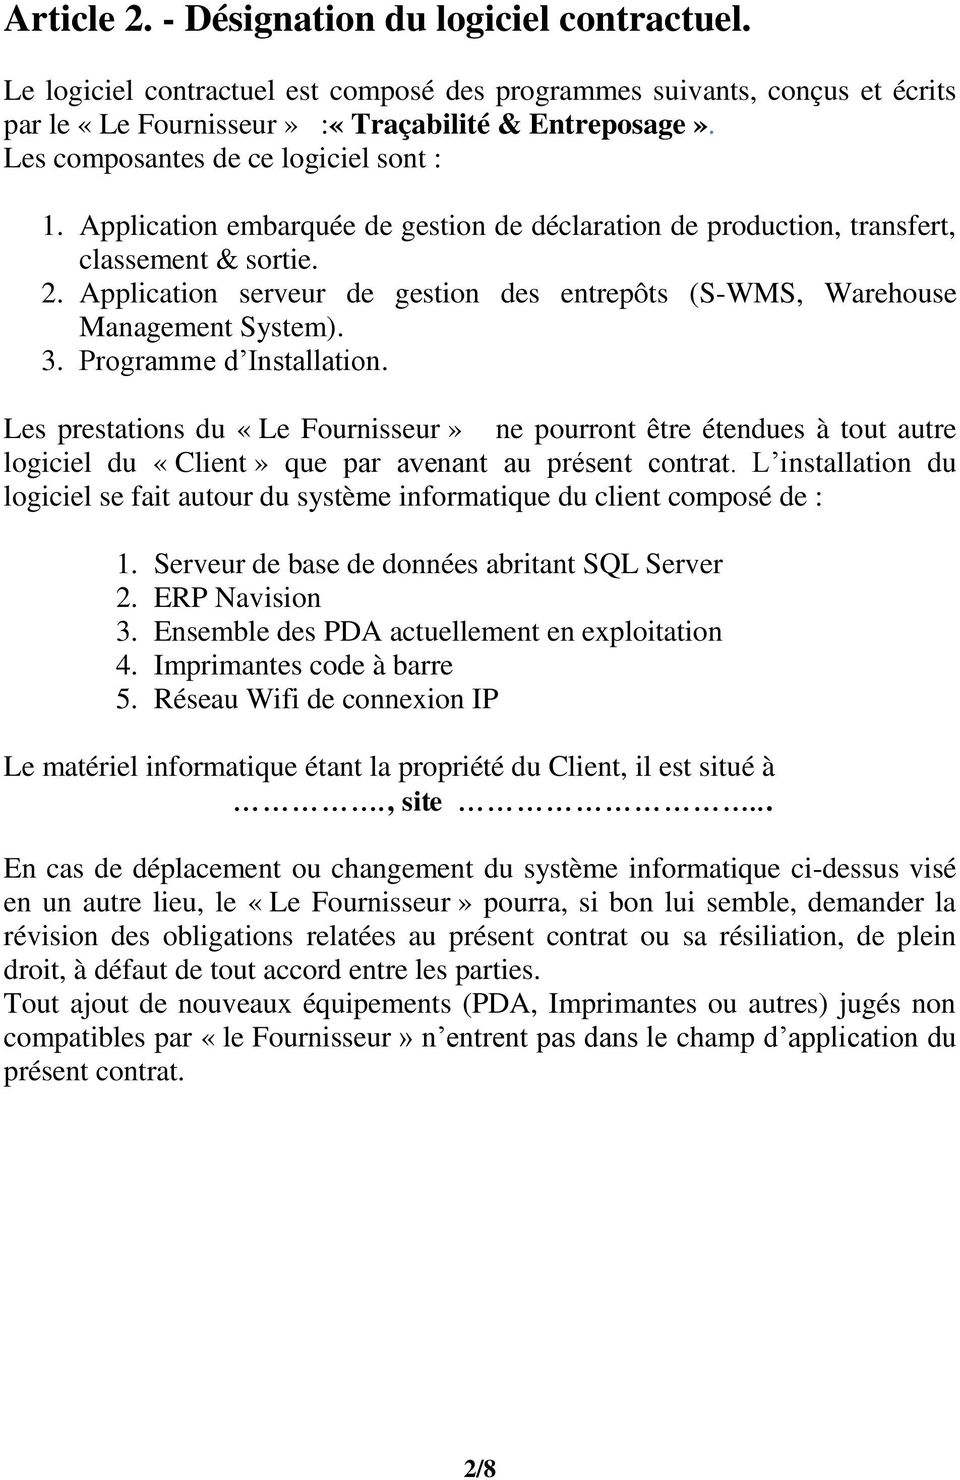 Application serveur de gestion des entrepôts (S-WMS, Warehouse Management System). 3. Programme d Installation.